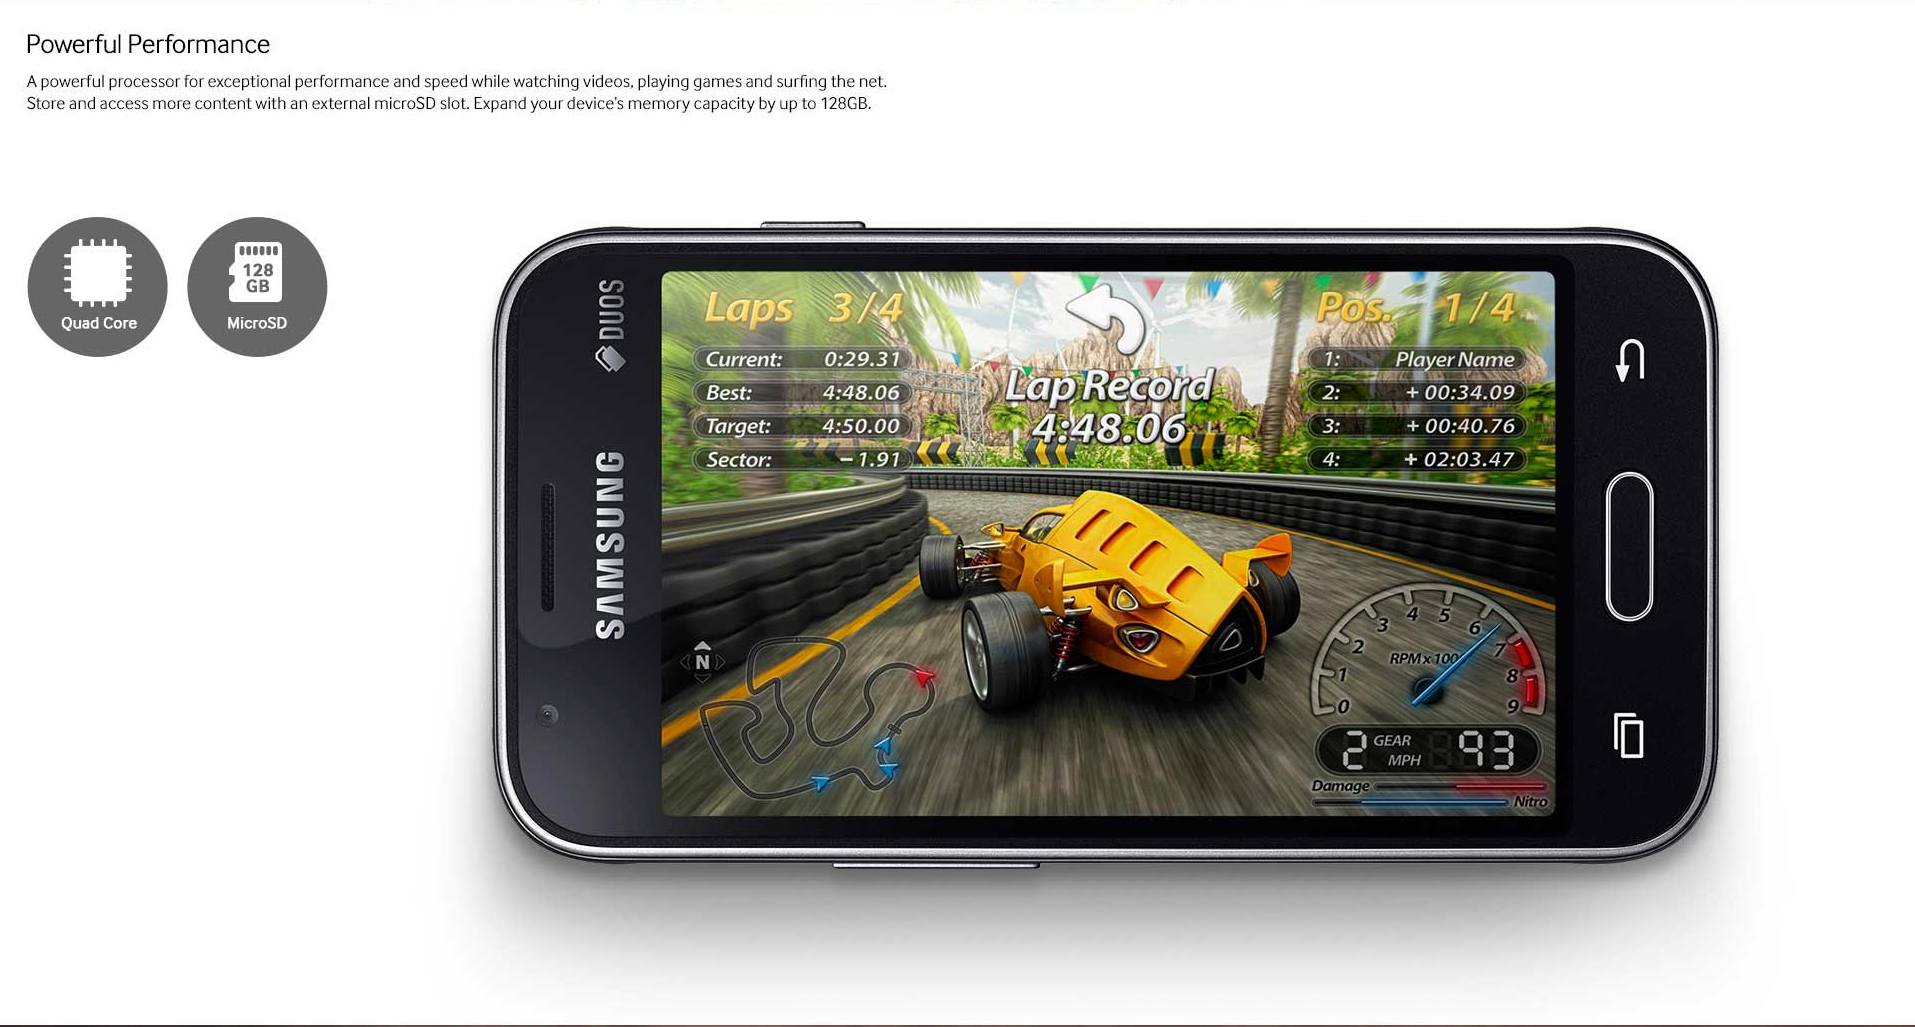 Samsung Galaxy J1 Mini gaming